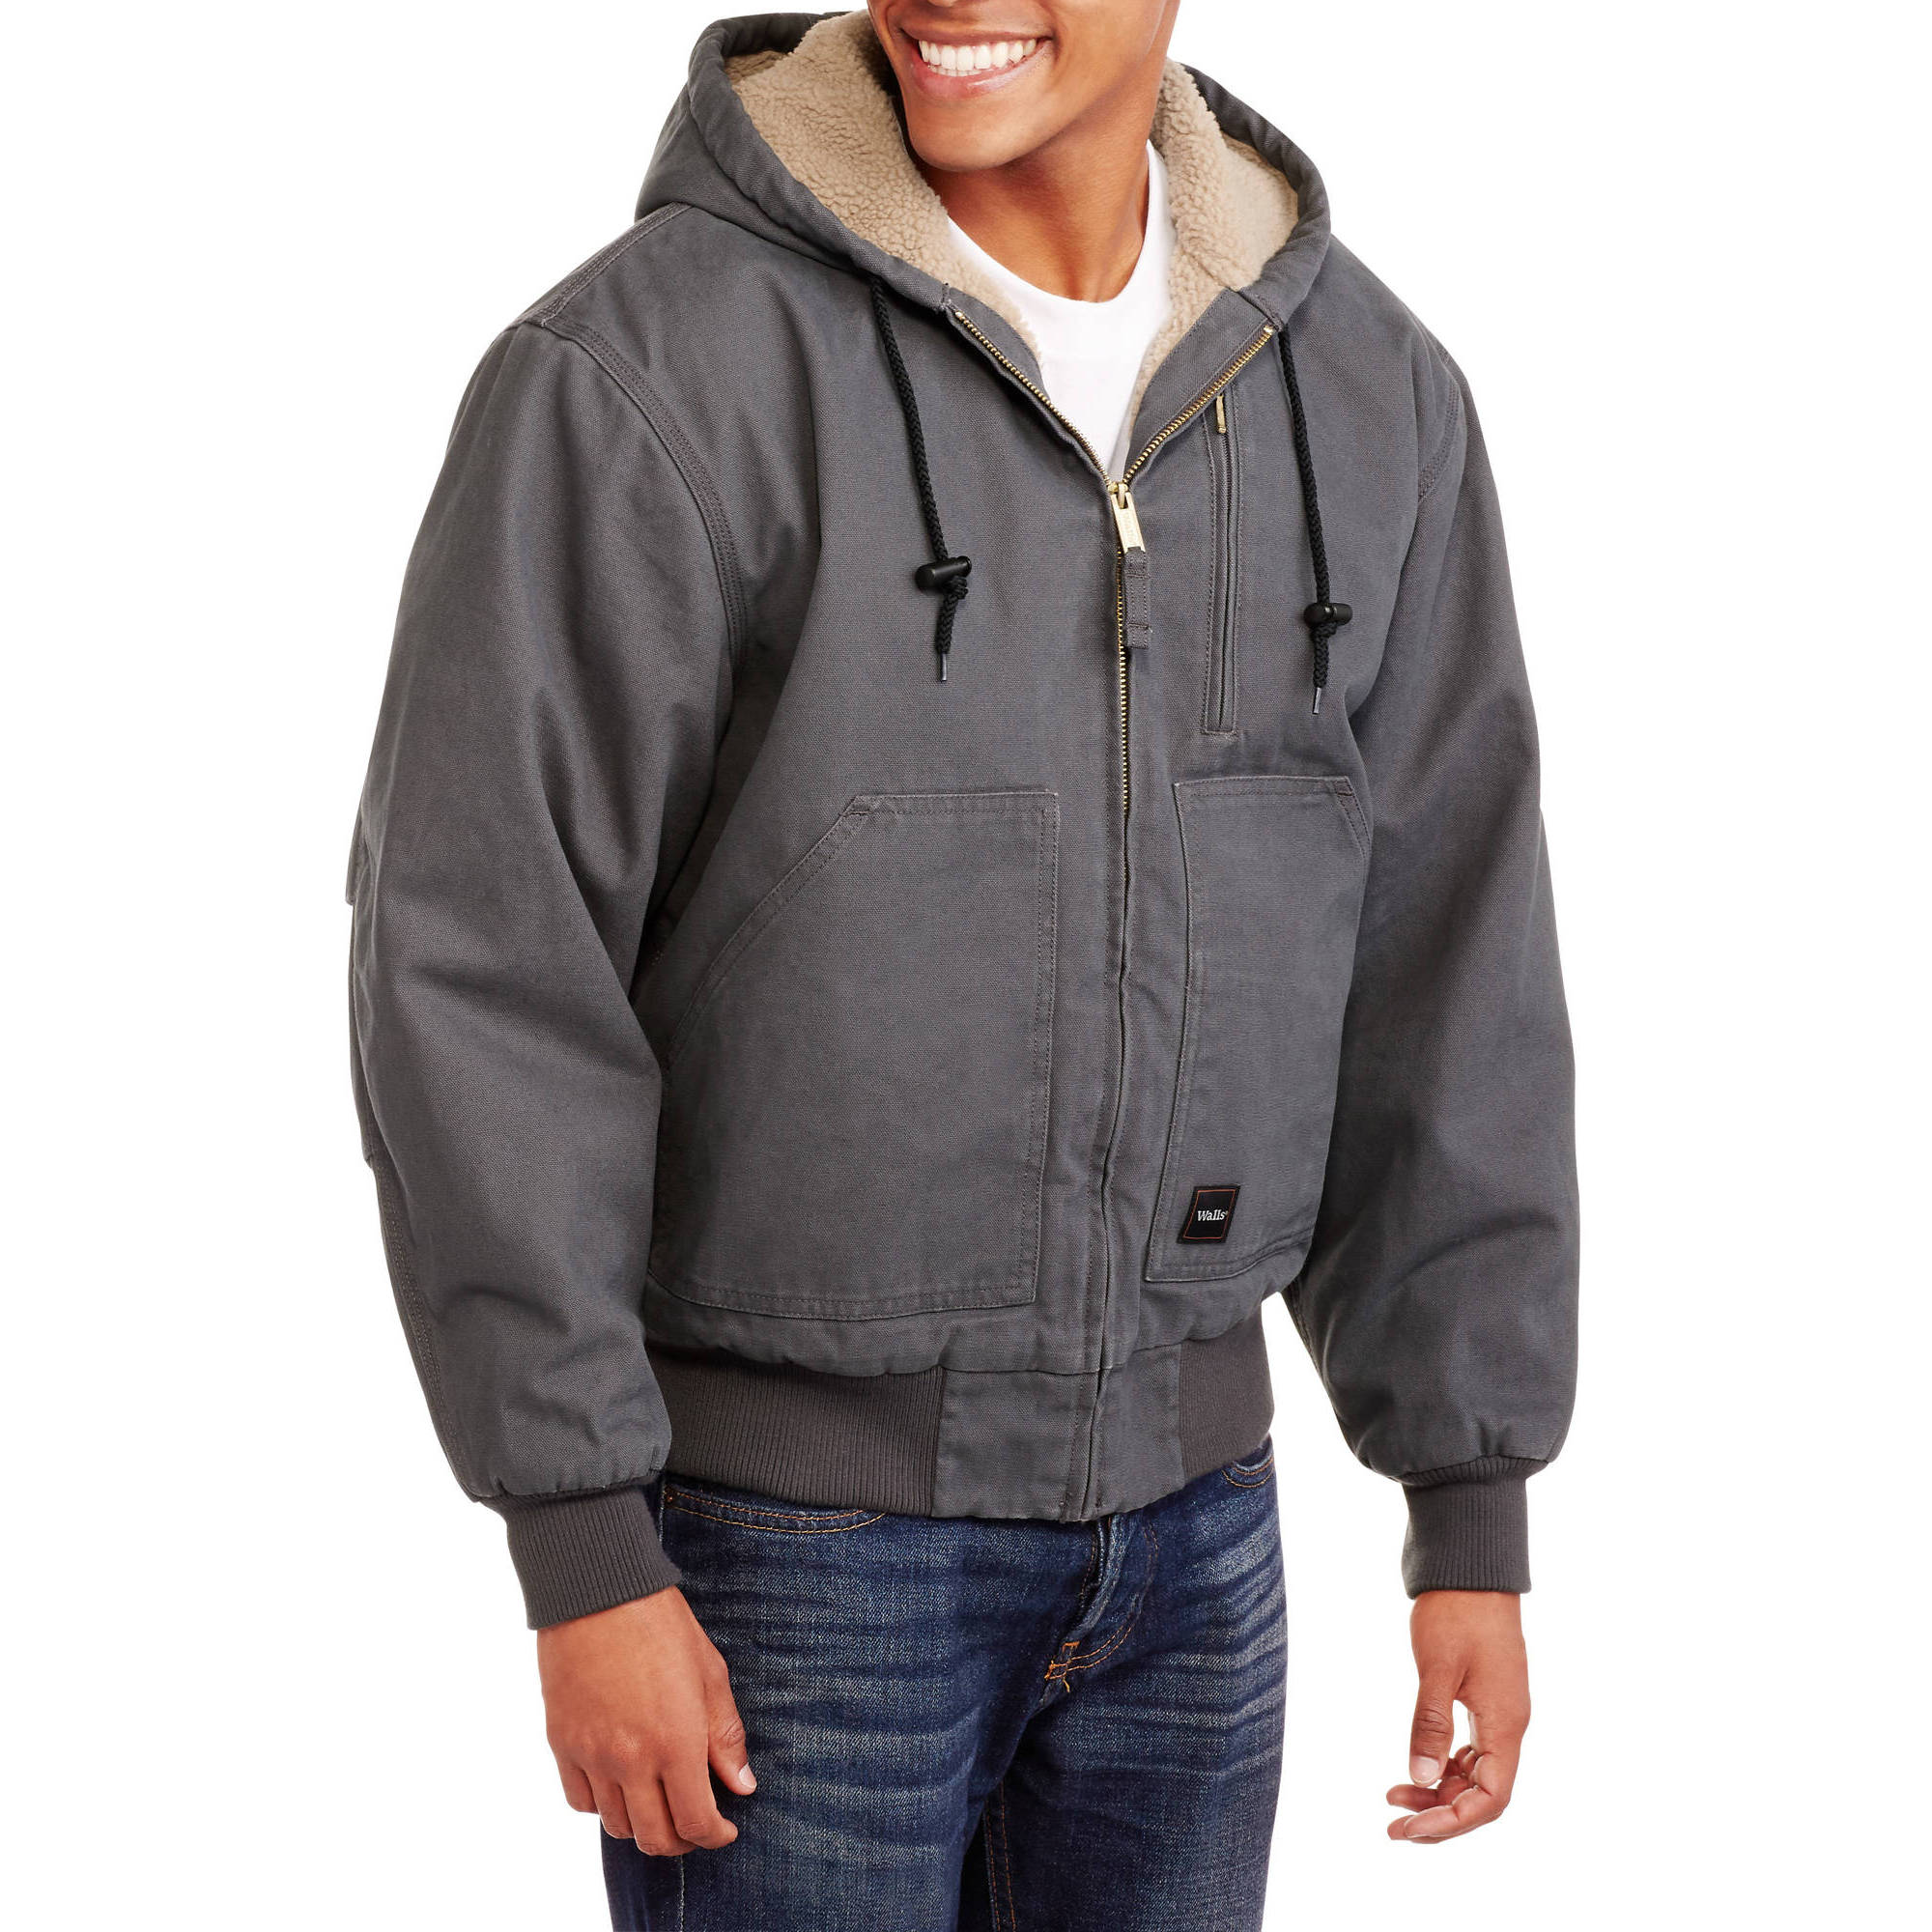 Men's Washed Duck Sherpa Lined Hooded Jacket by WILLIAMSON-DICKIE MFG CO.